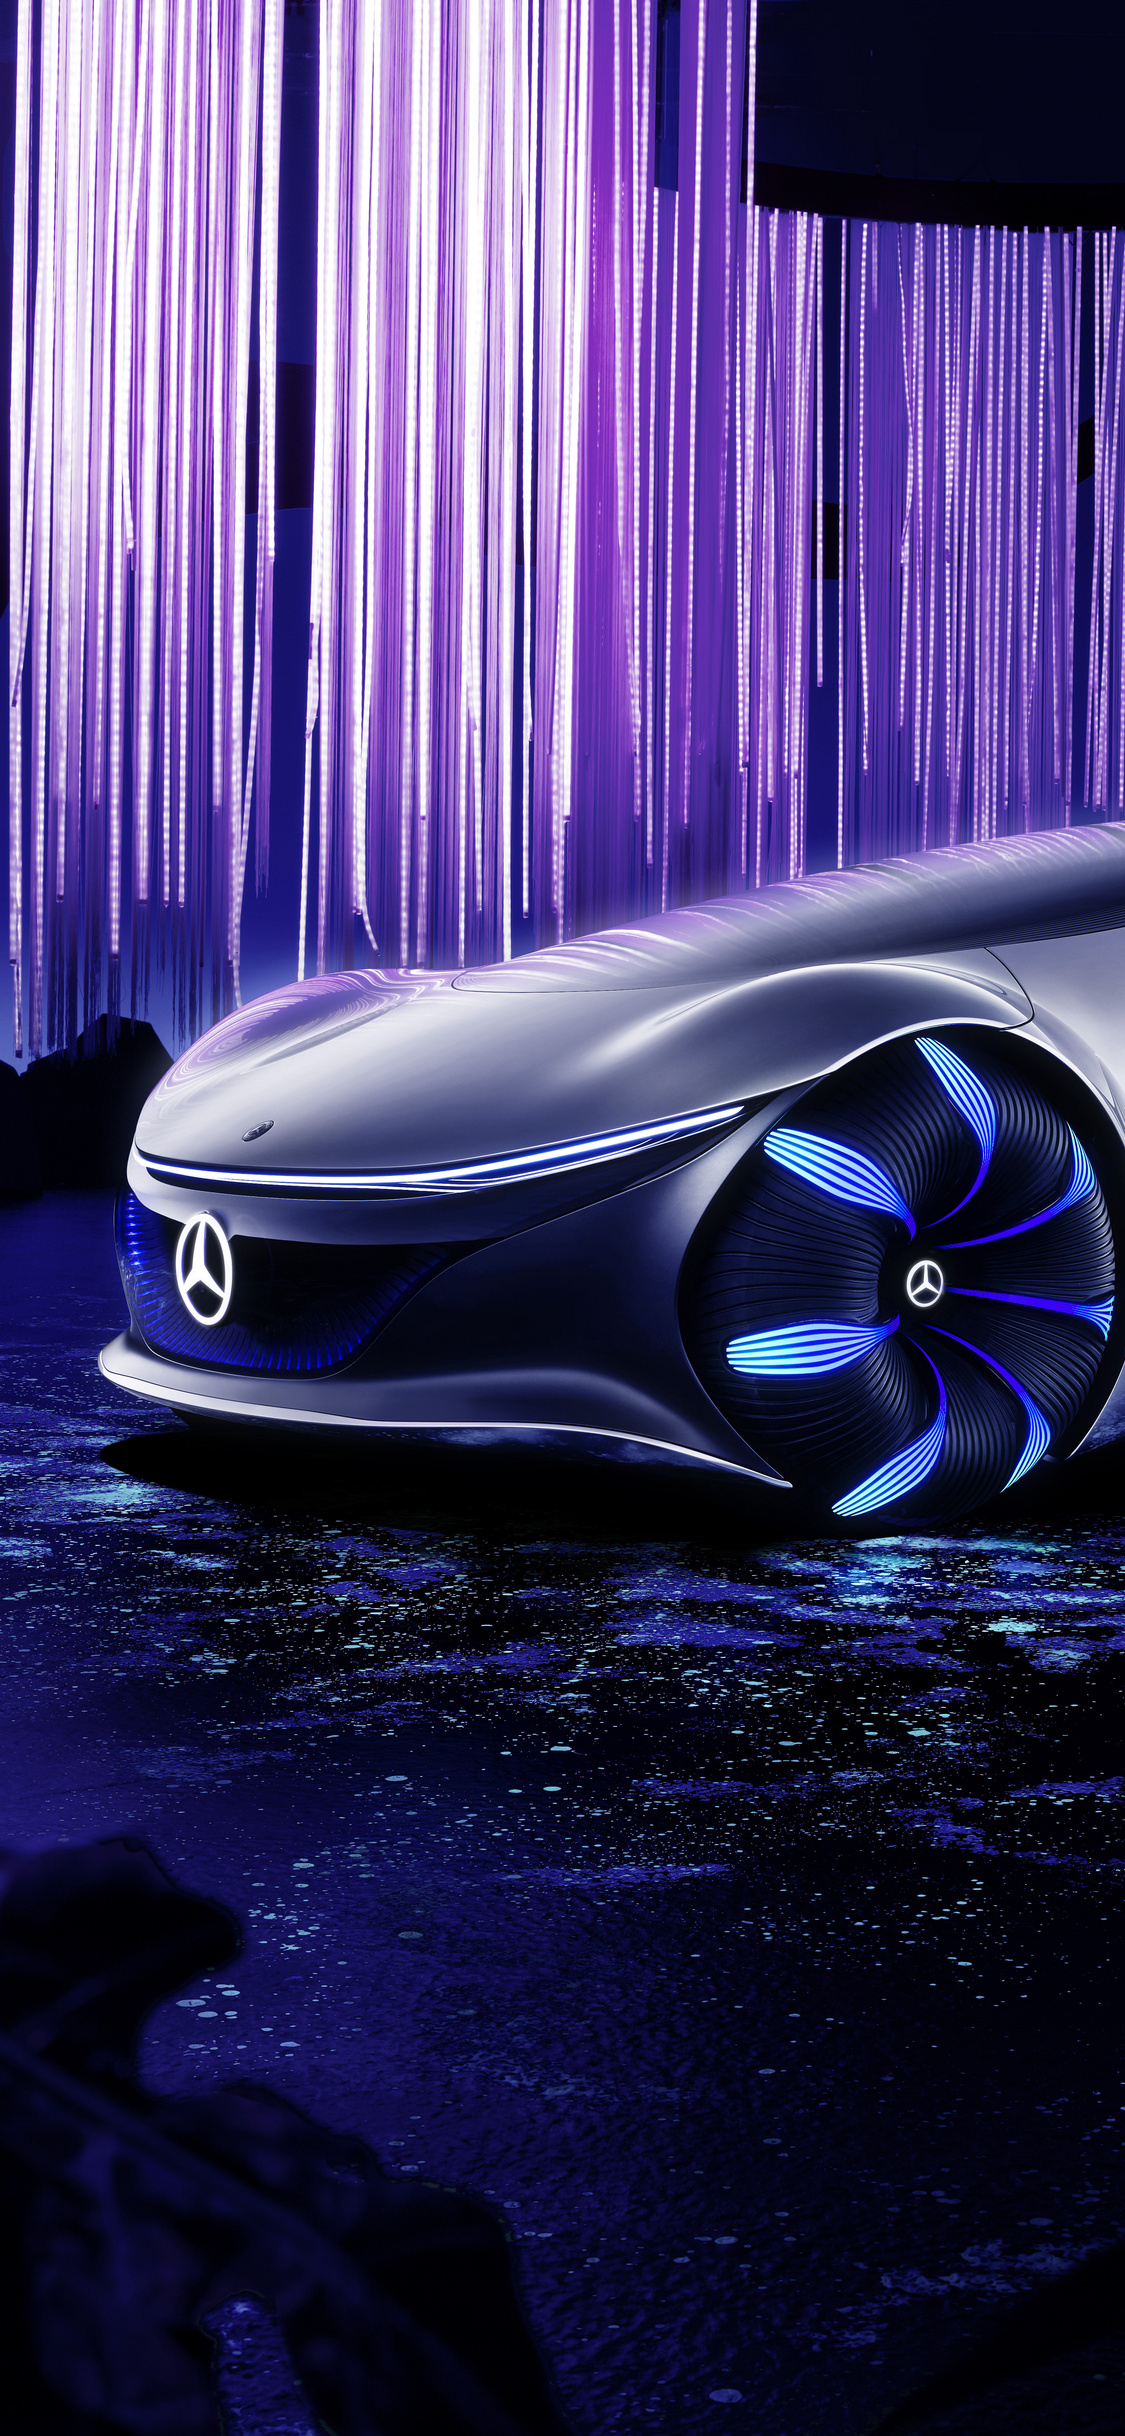 2020-mercedes-benz-vision-avtr-on.jpg